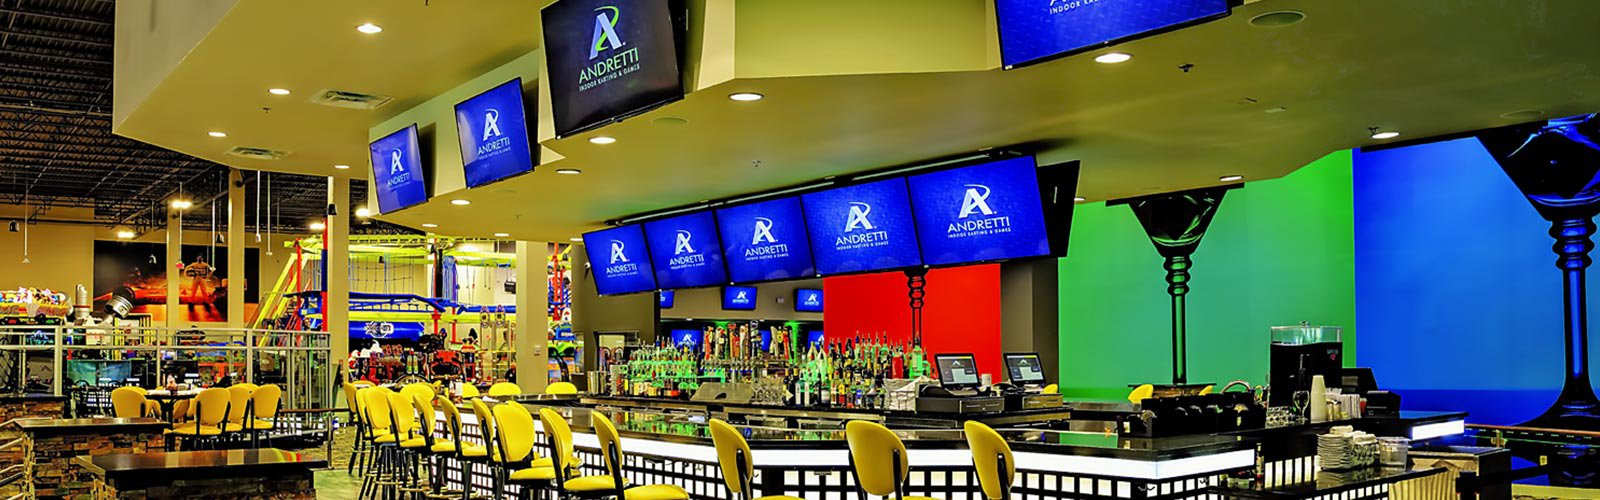 Andretti Indoor Go Karting bar and dining area with several video displays. (background)